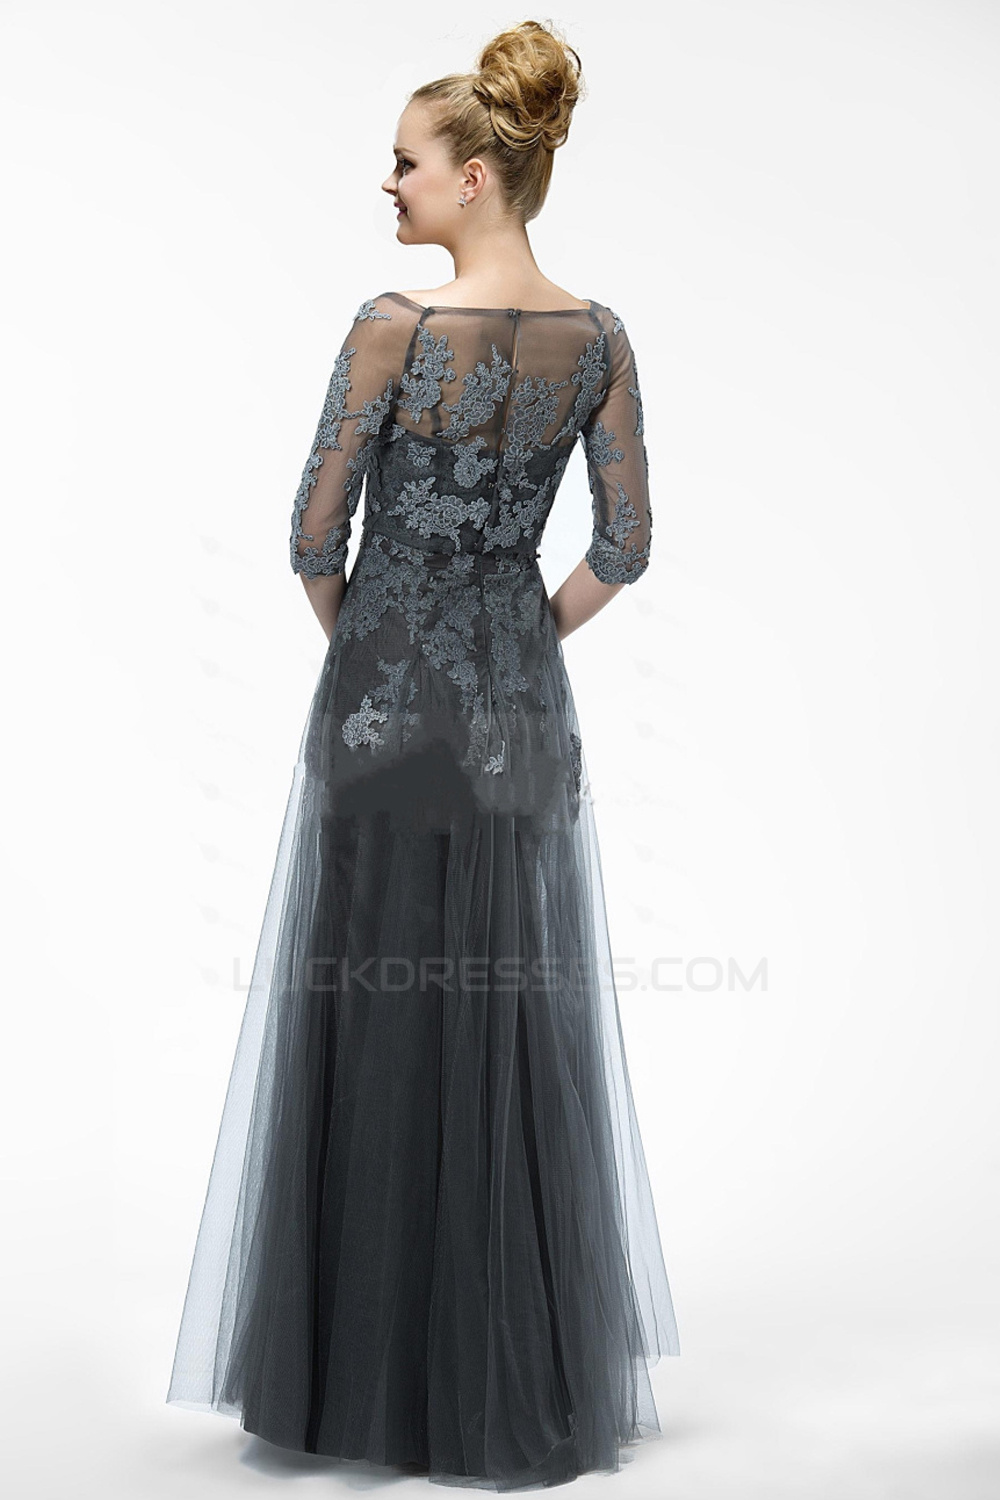 cb8482ee05c Elegant Long Tulle and Applique Prom Evening Formal Party Dresses Mother Of  The Bride Dresses ED010552